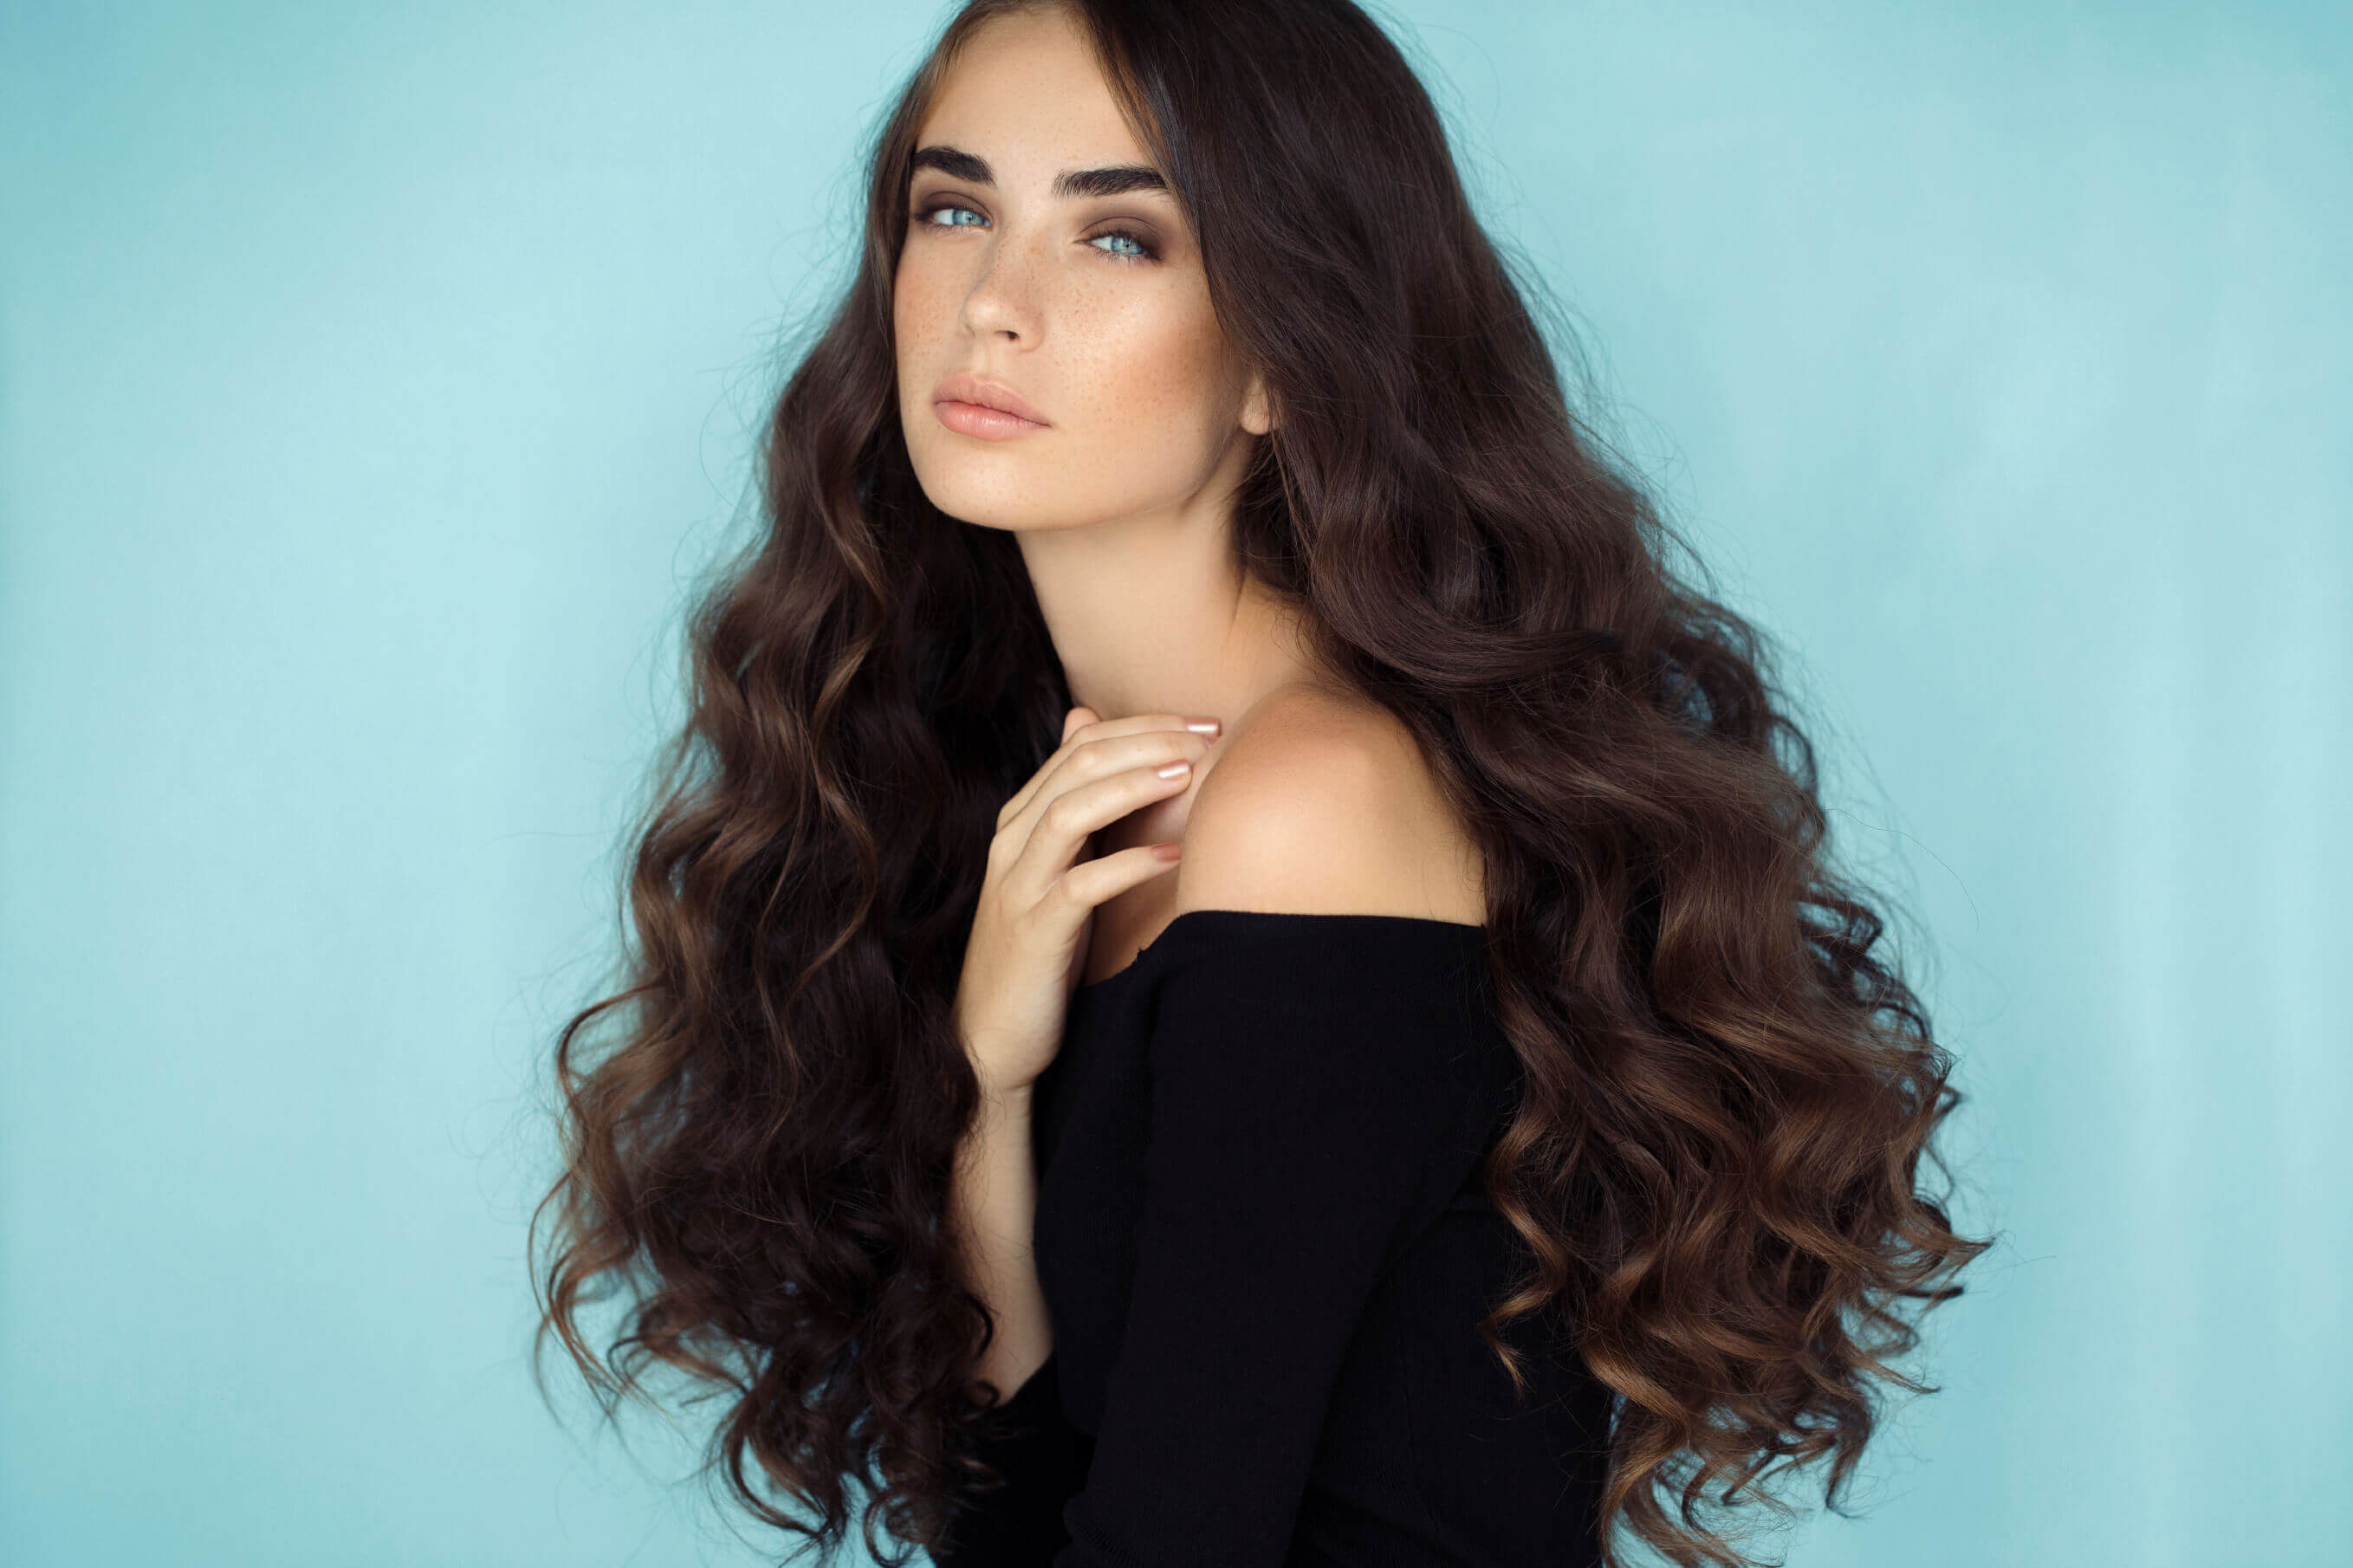 Keratin Treatment For Curly Hair The Best Option For You